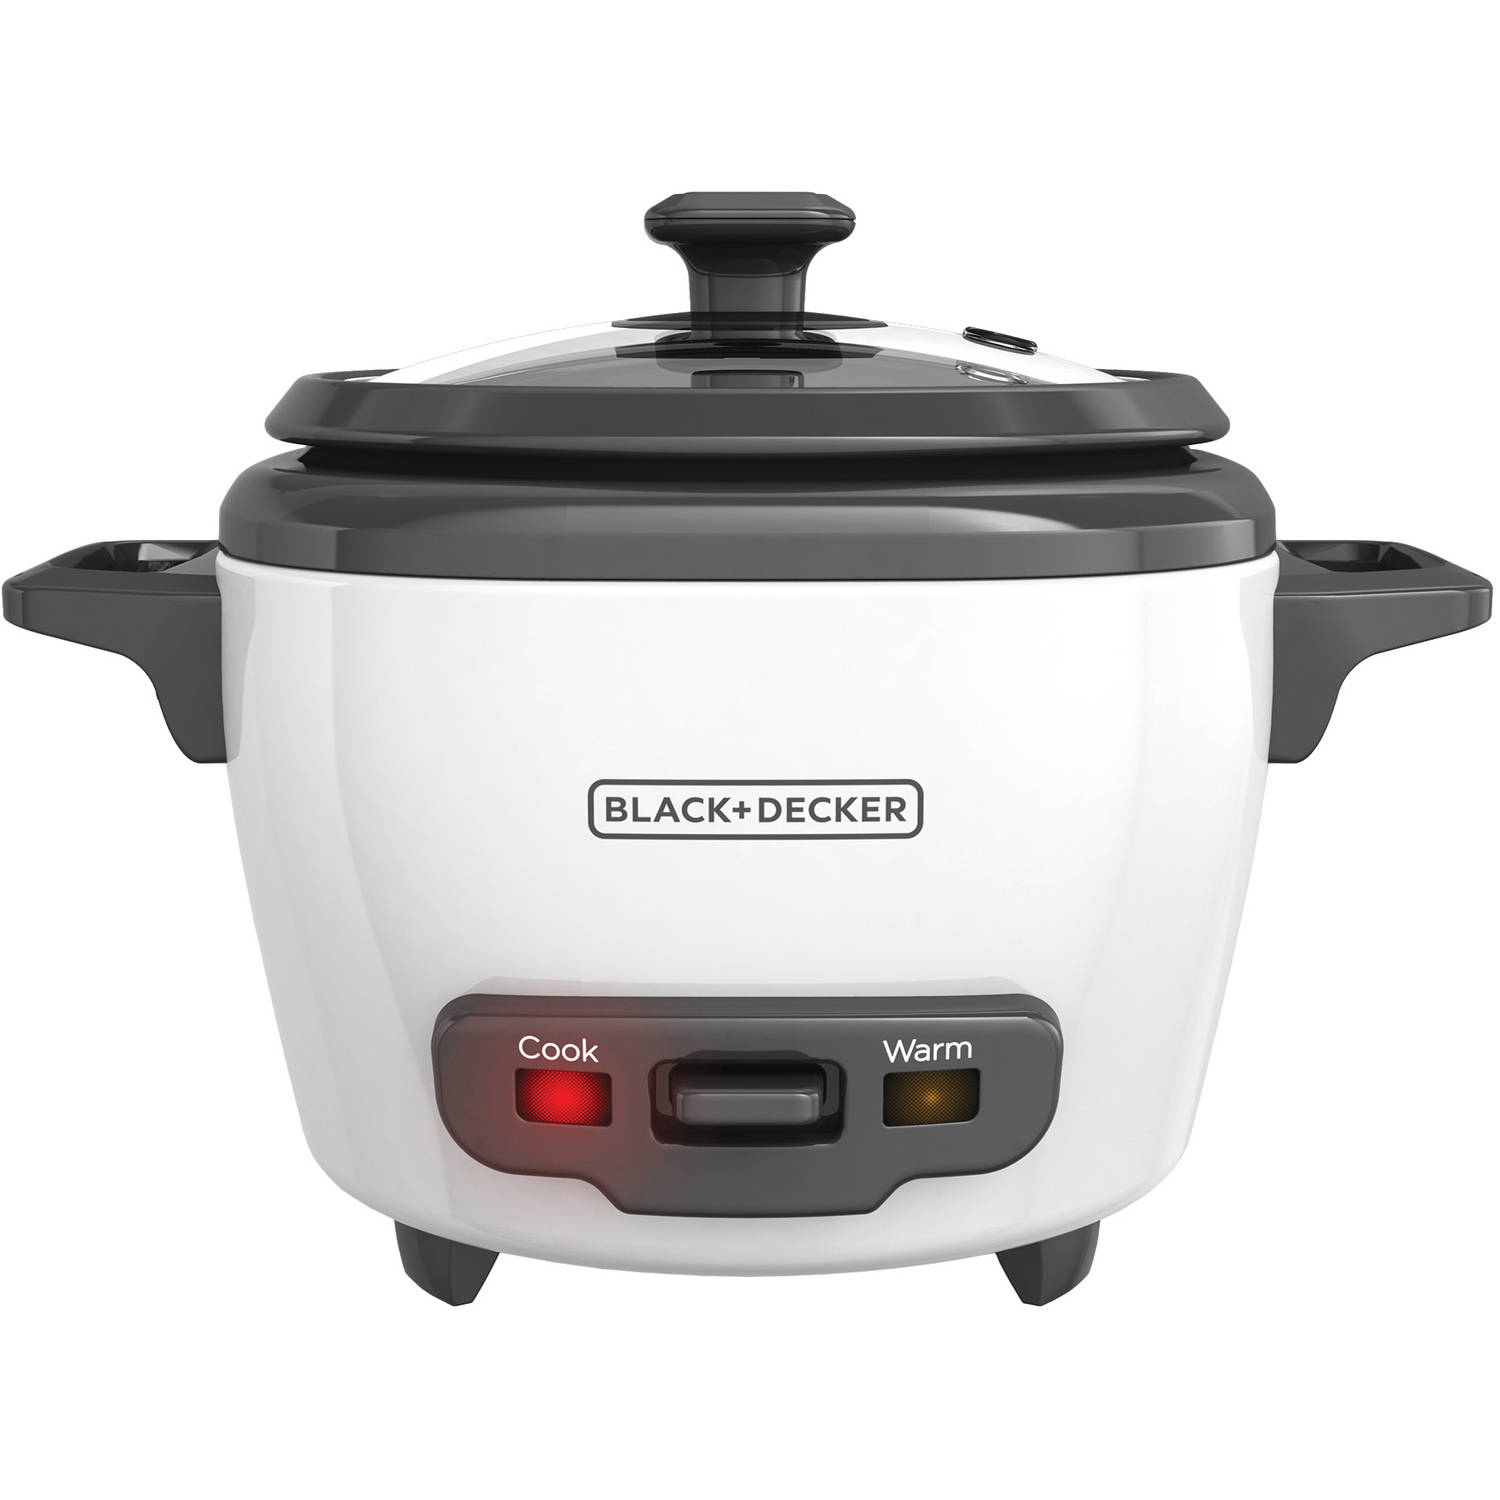 BLACK+DECKER 3-Cup Rice Cooker, White, RC503